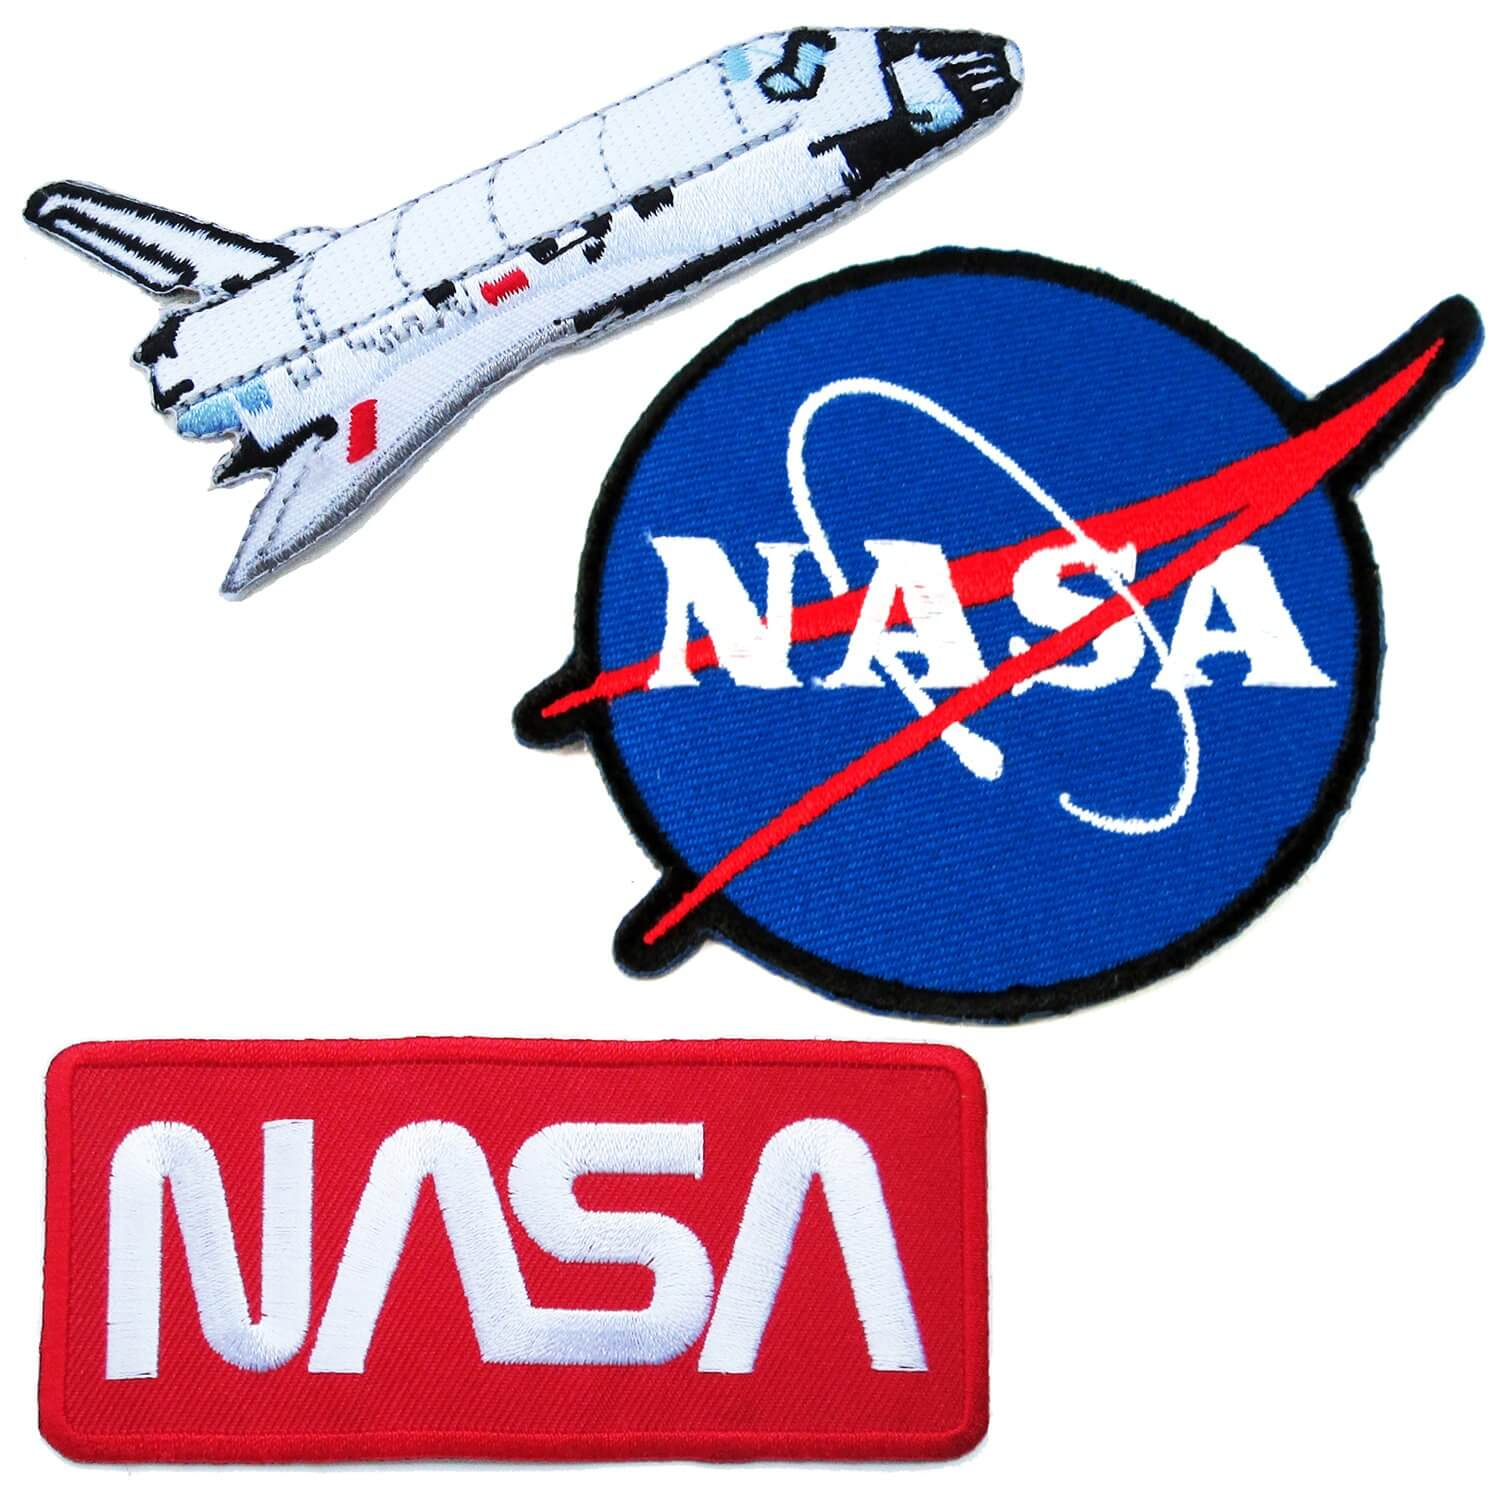 Juan Carlos Pagan - NASA Logo - The Logo Creative Designer Interview